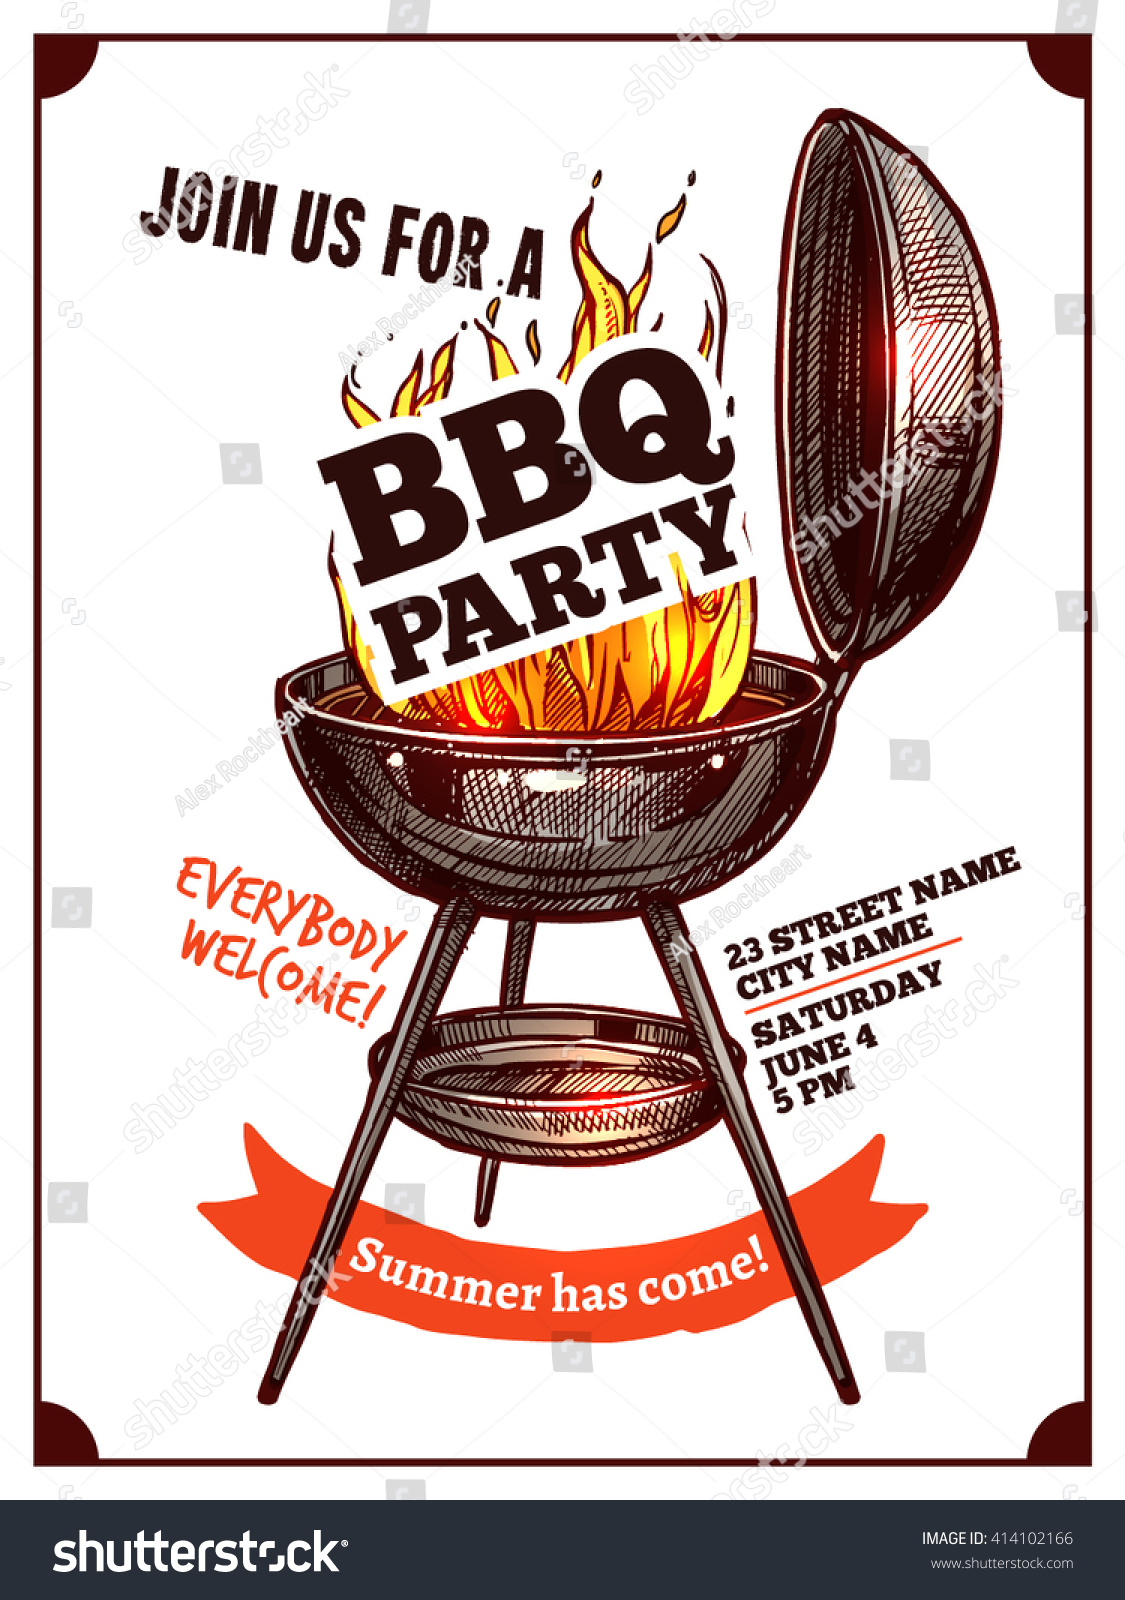 Cookout border clipart hot dog cookout invite stock vector art - Bbq Barbecue Vintage Party Poster With Fire And Typography